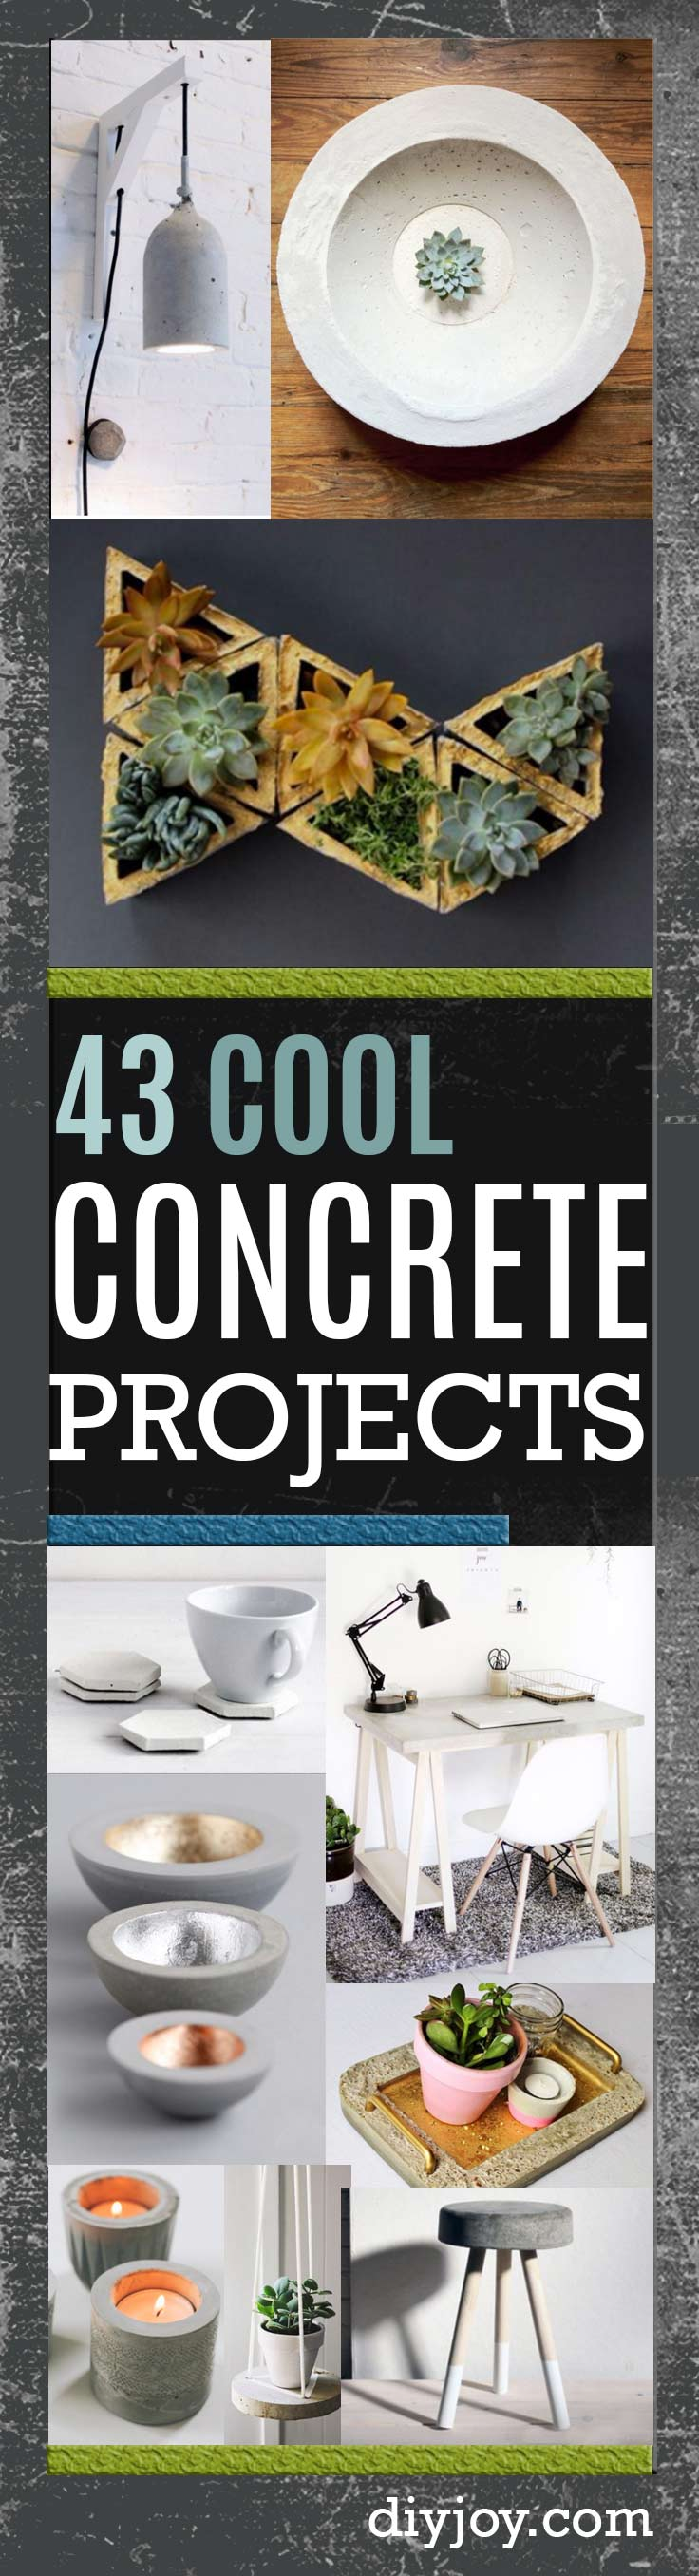 concrete crafts and DIY ideas made with concrete- Cheap and creative projects and tutorials for countertops and ideas for floors, patio and porch decor, tables, planters, vases, frames, jewelry holder, home decor and DIY gifts #diy #crafts